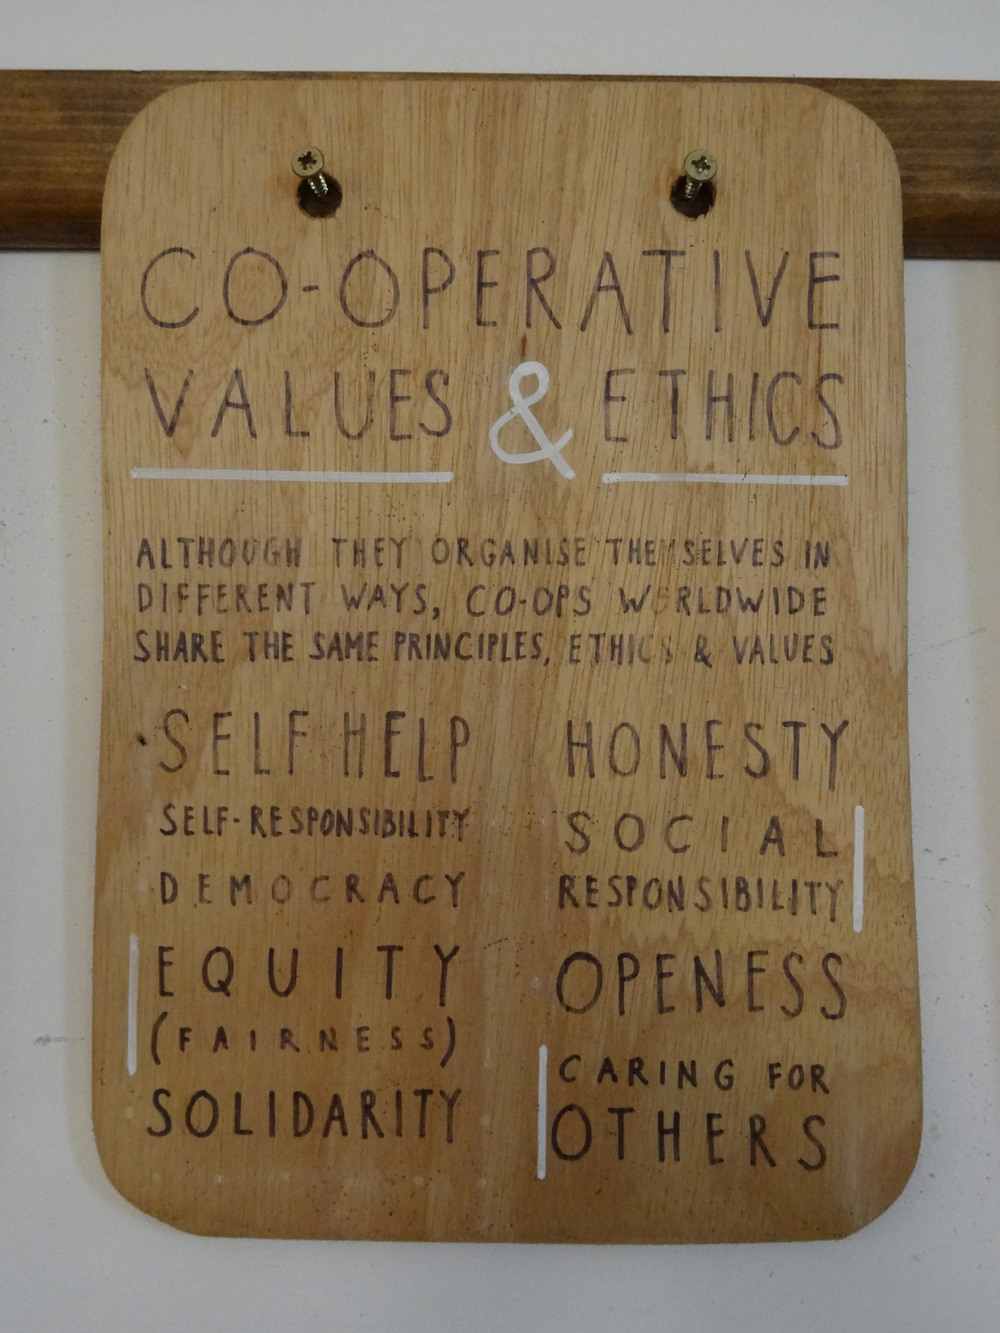 cooperative values and ethics